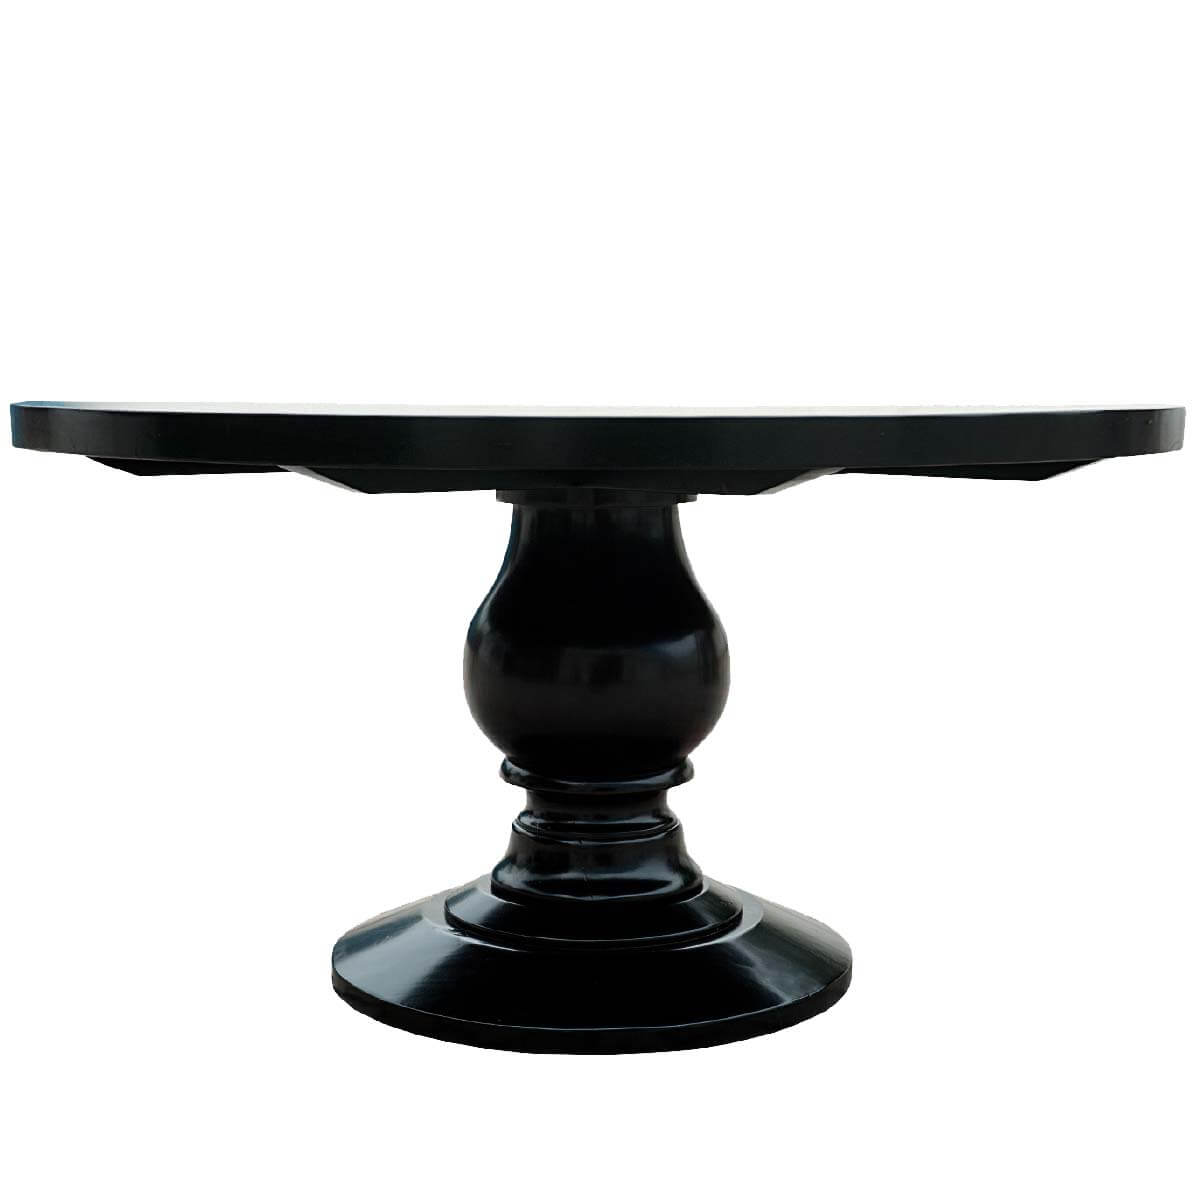 Sutton black baluster pedestal traditional wood round dining table - Pedestal kitchen tables ...